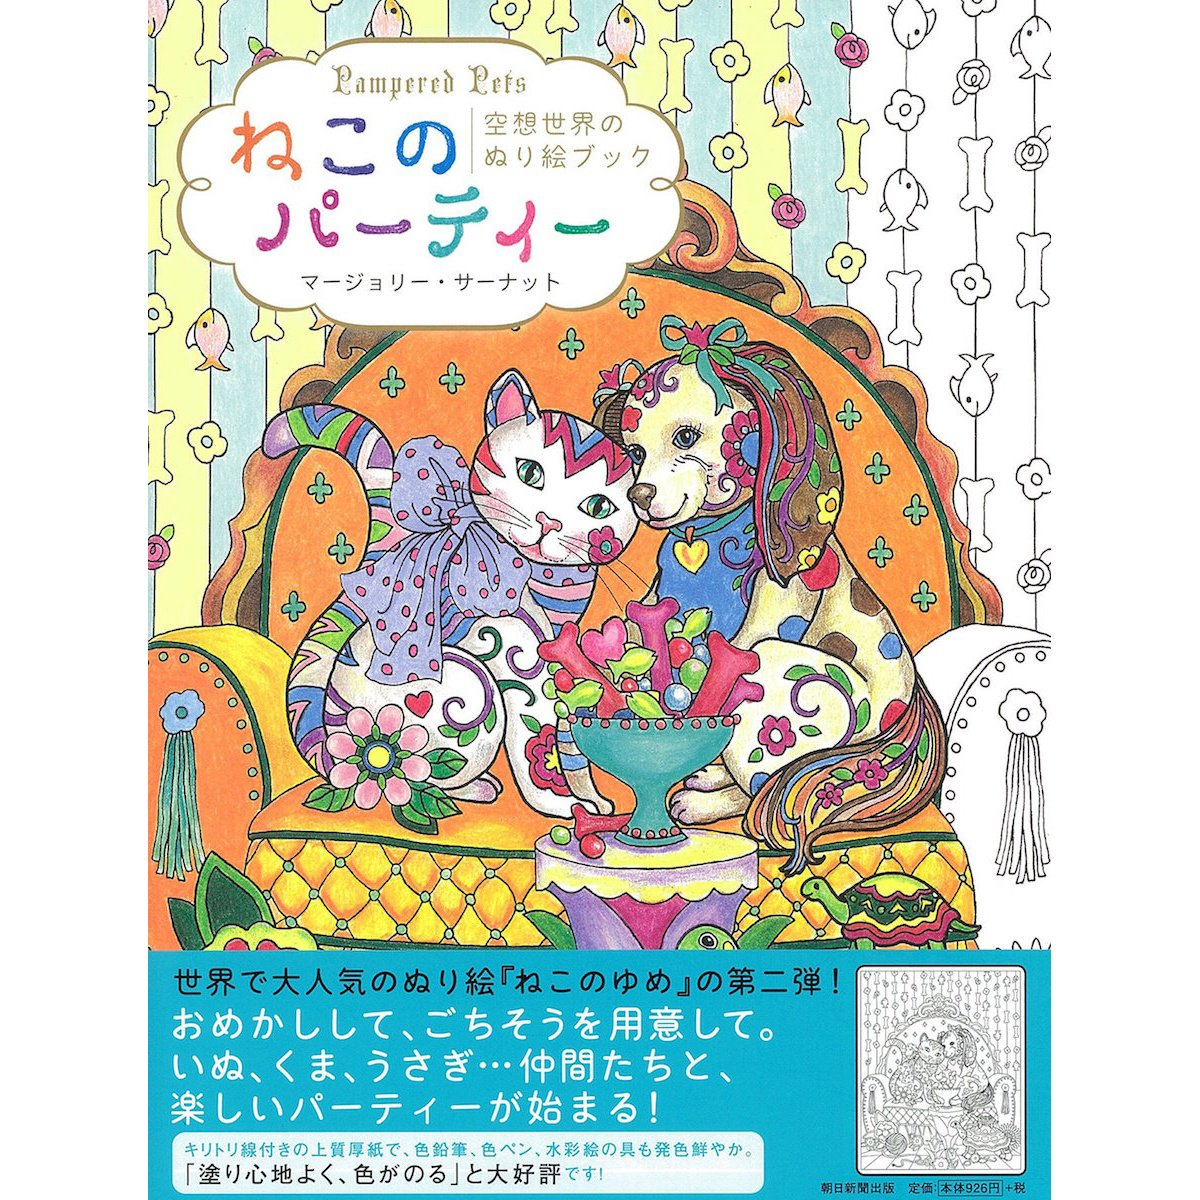 pampered pets cat party fantasy world coloring book tokyo otaku